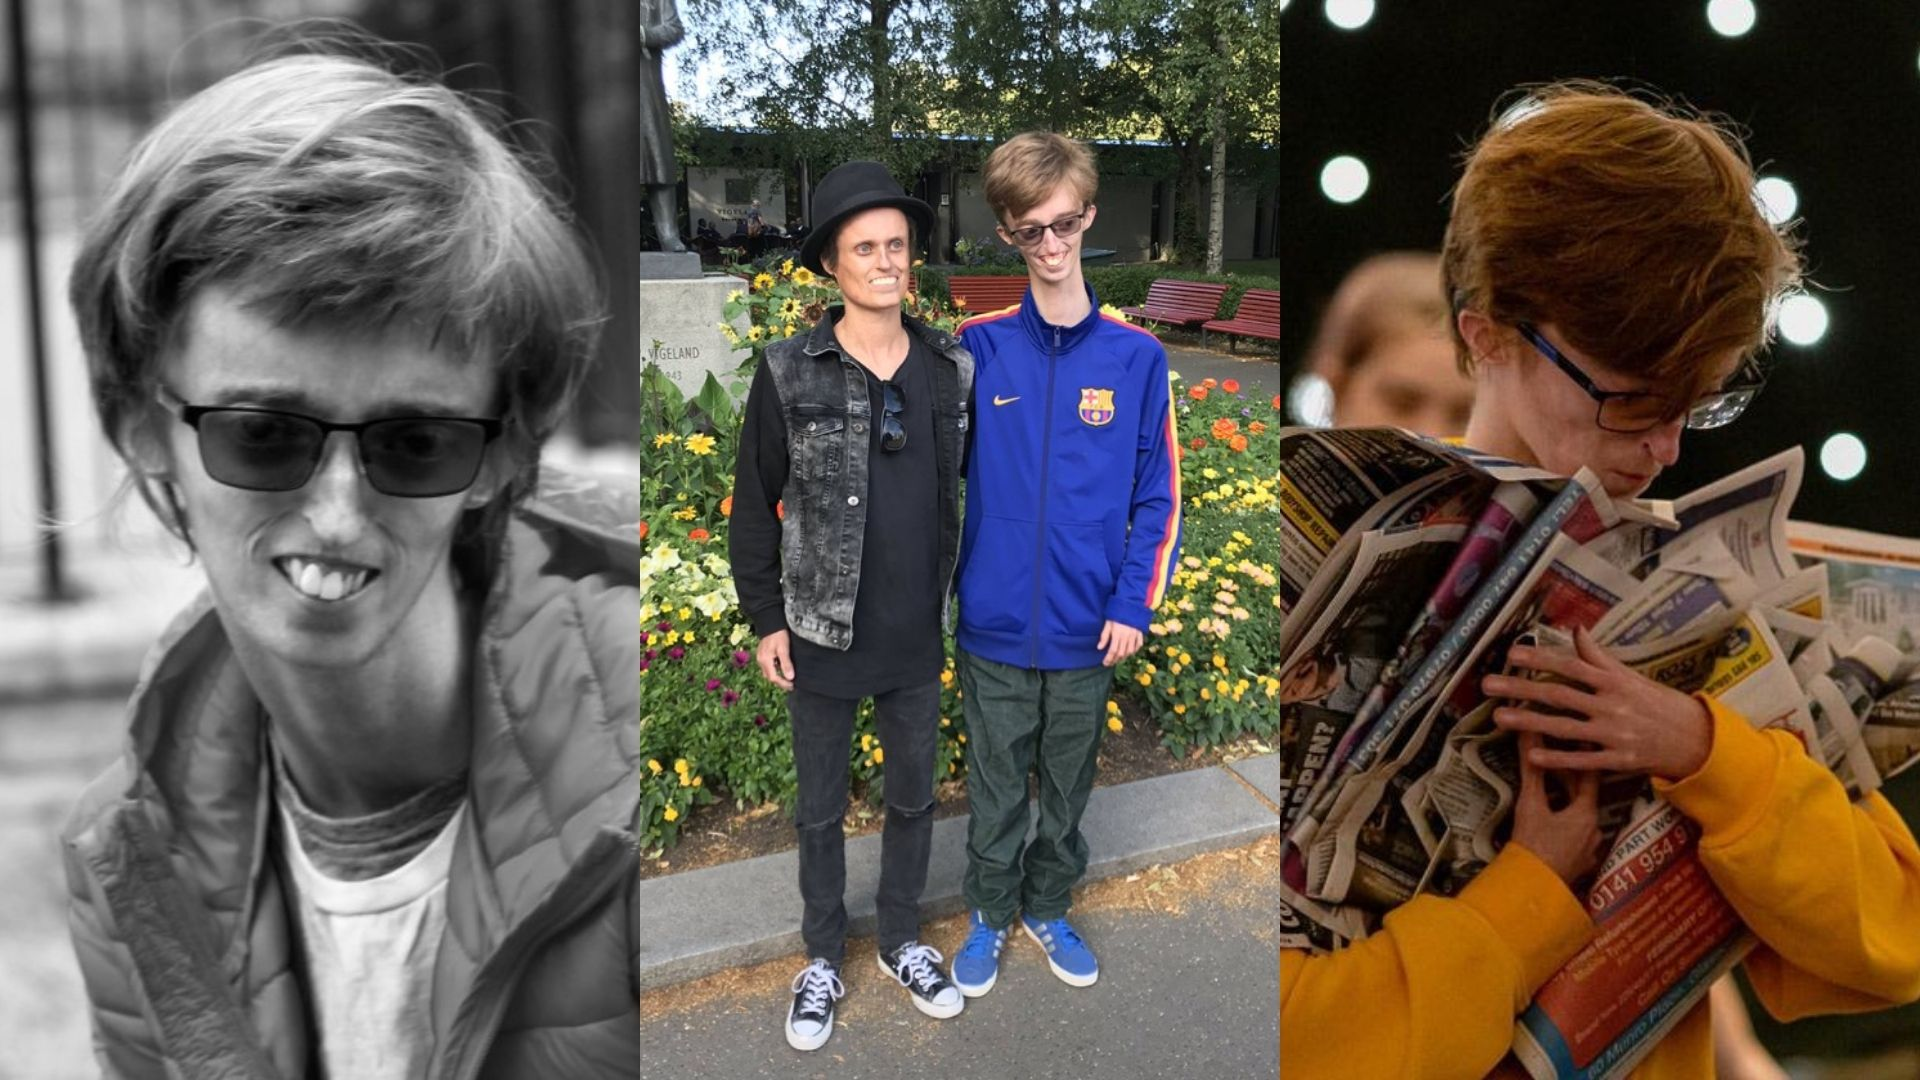 Left: A black and white image of Dylan wearing a jacket, t-shirt and glasses. Centre: Dylan posing for a photo next to a man dressed in a black hat, black jacket, jumper, jeans and shoes. Dylan is wearing a blue zip up jumper, dark trousers and blue shoes. Right: Dylan, wearing a yellow jumper and holding a bunch of newspapers in his hands.